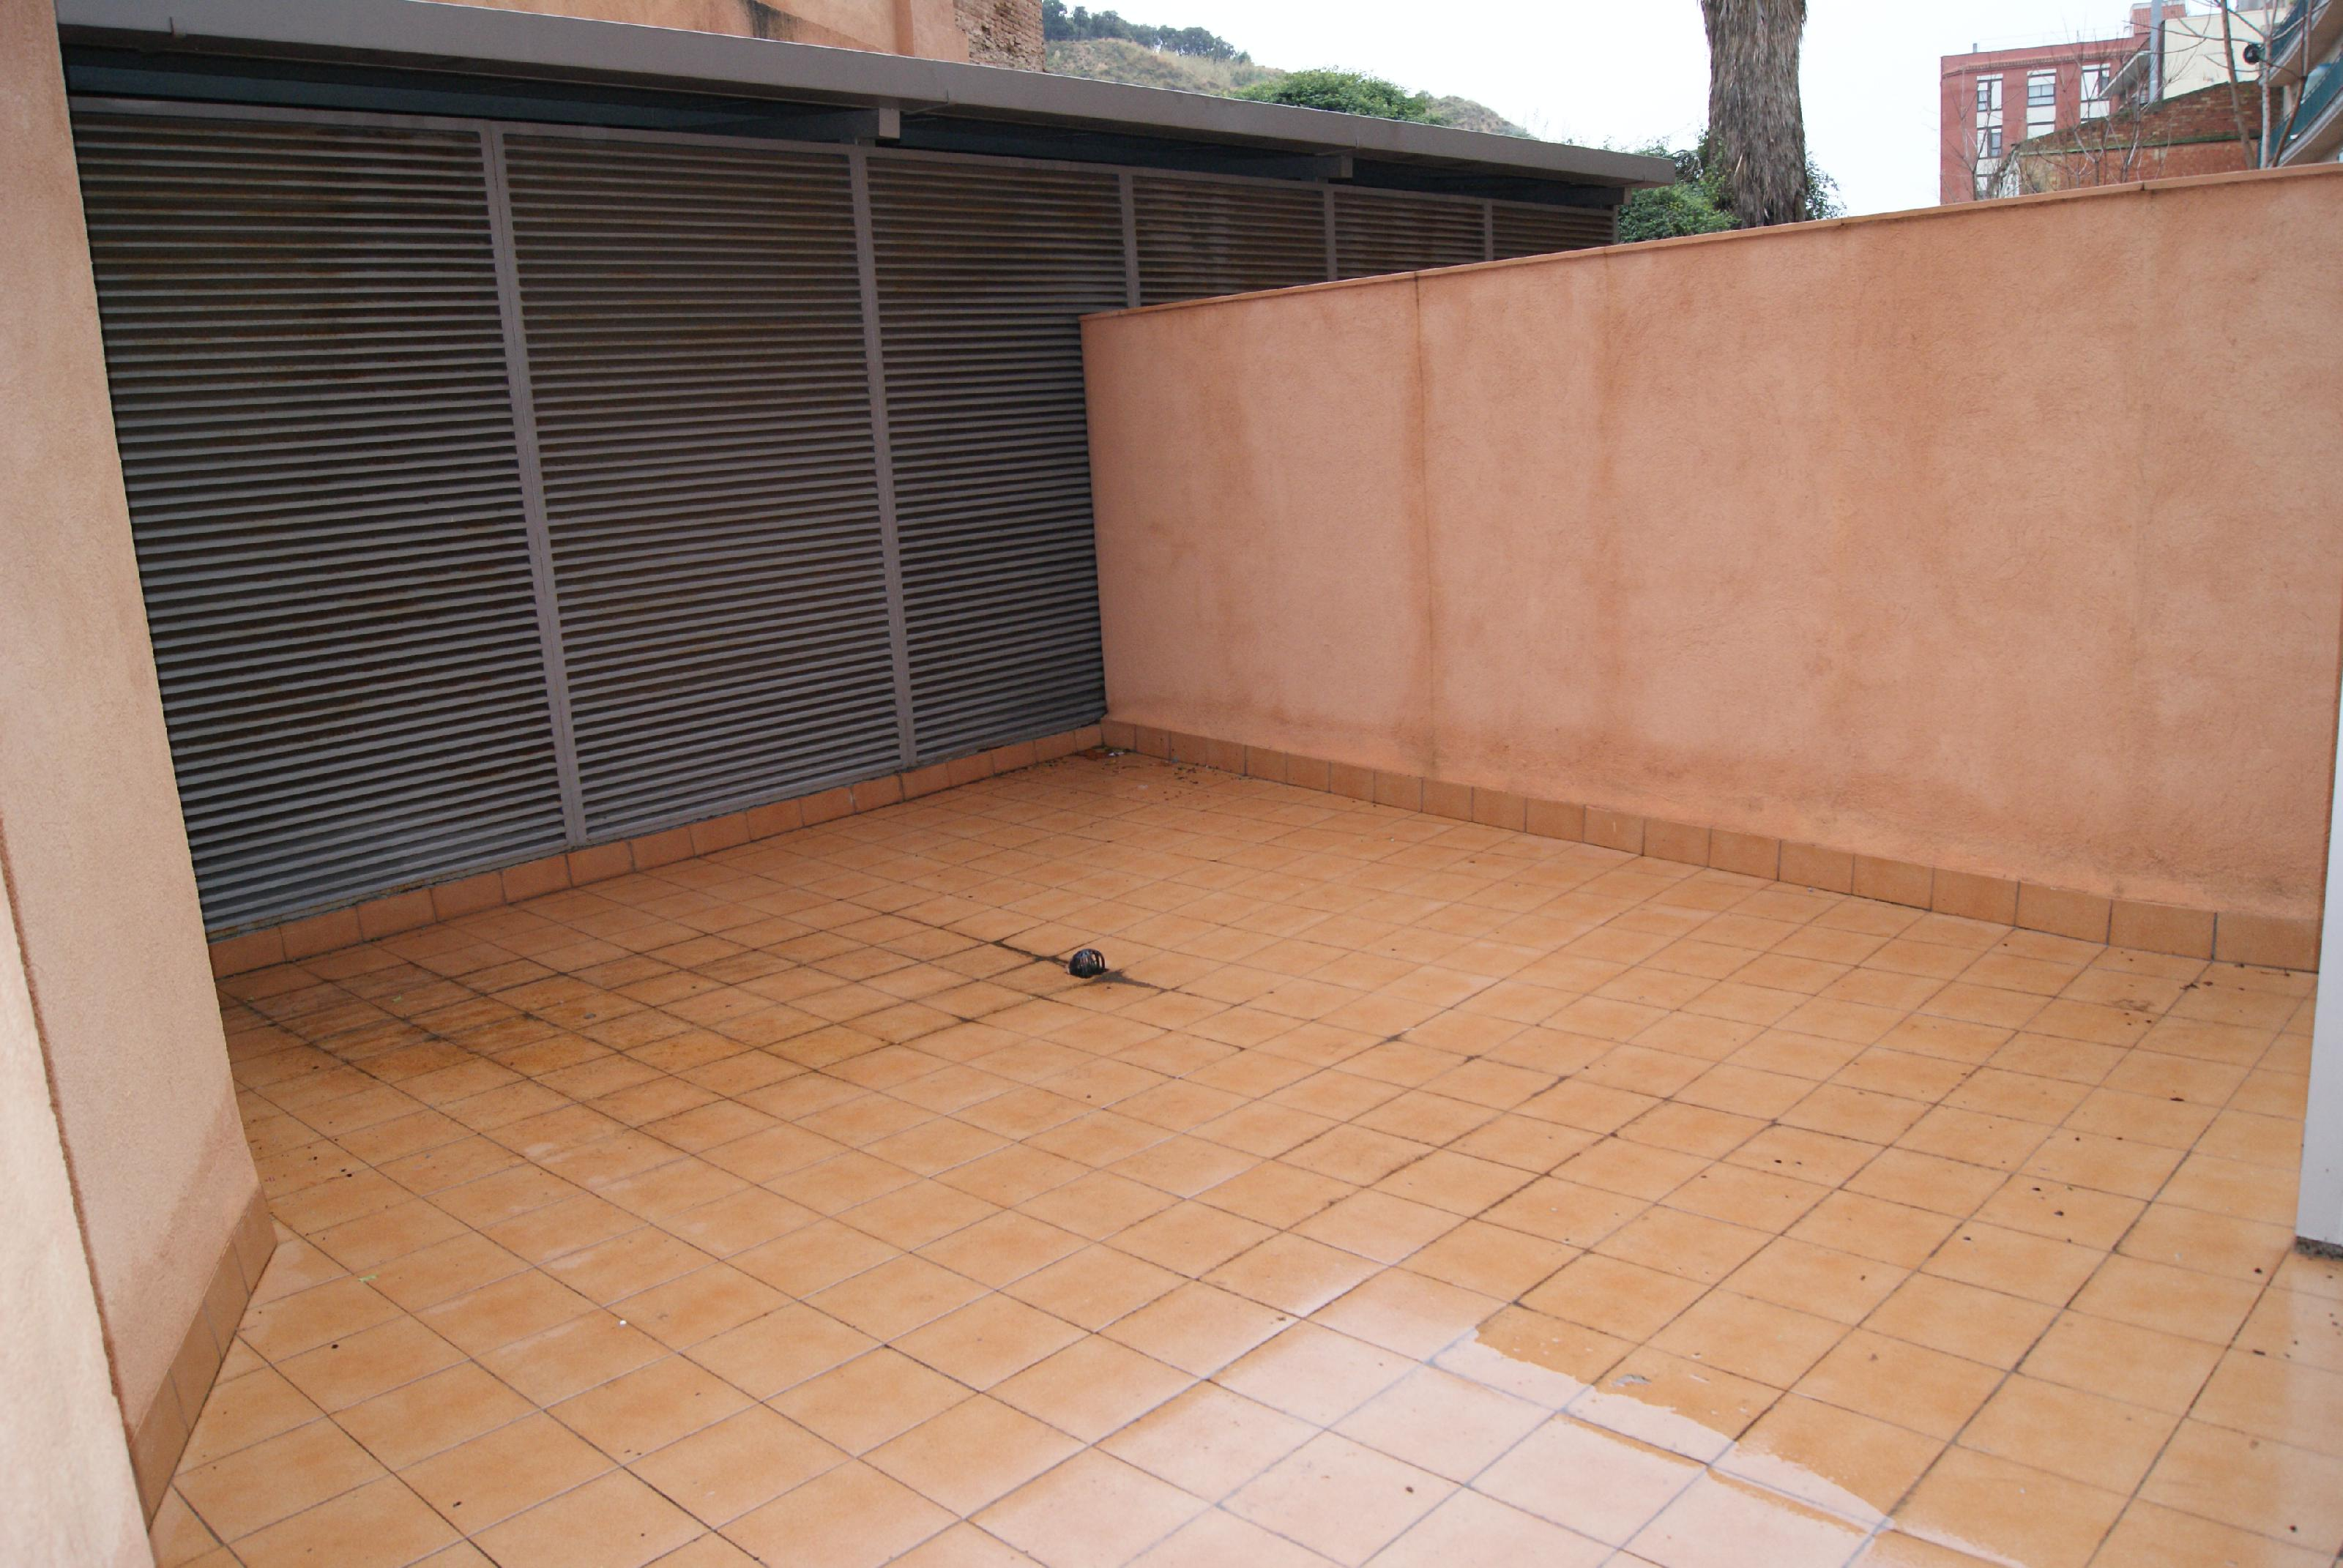 235220 Duplex for sale in Sants-Montjuïc, La Marina de Port 19